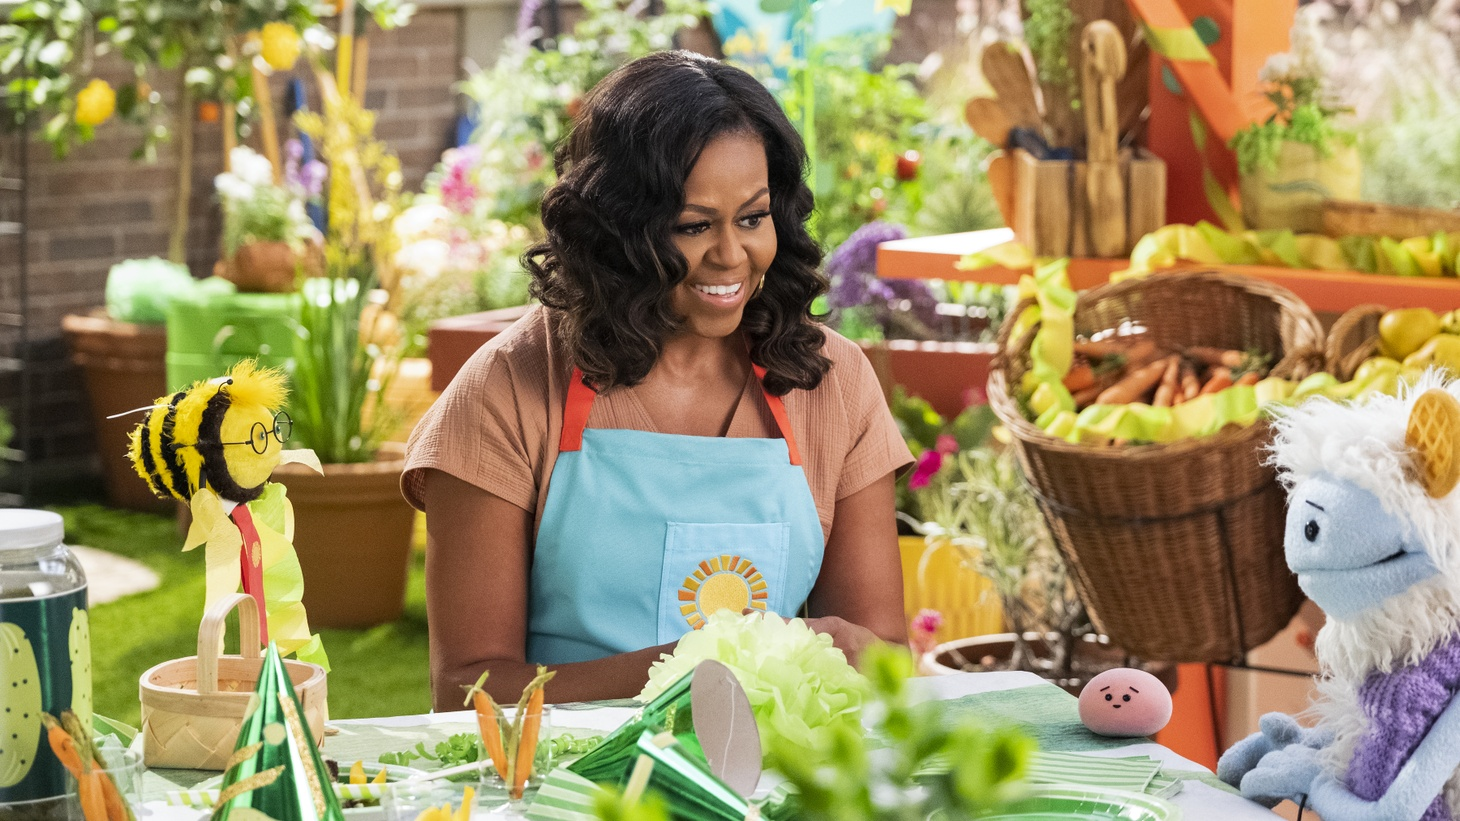 """Michelle Obama acted as a producer and is featured as """"Mrs. O"""" on the Netflix series, """"Waffles + Mochi,"""" imparting life lessons to the puppets upon returning from their global culinary escapades."""